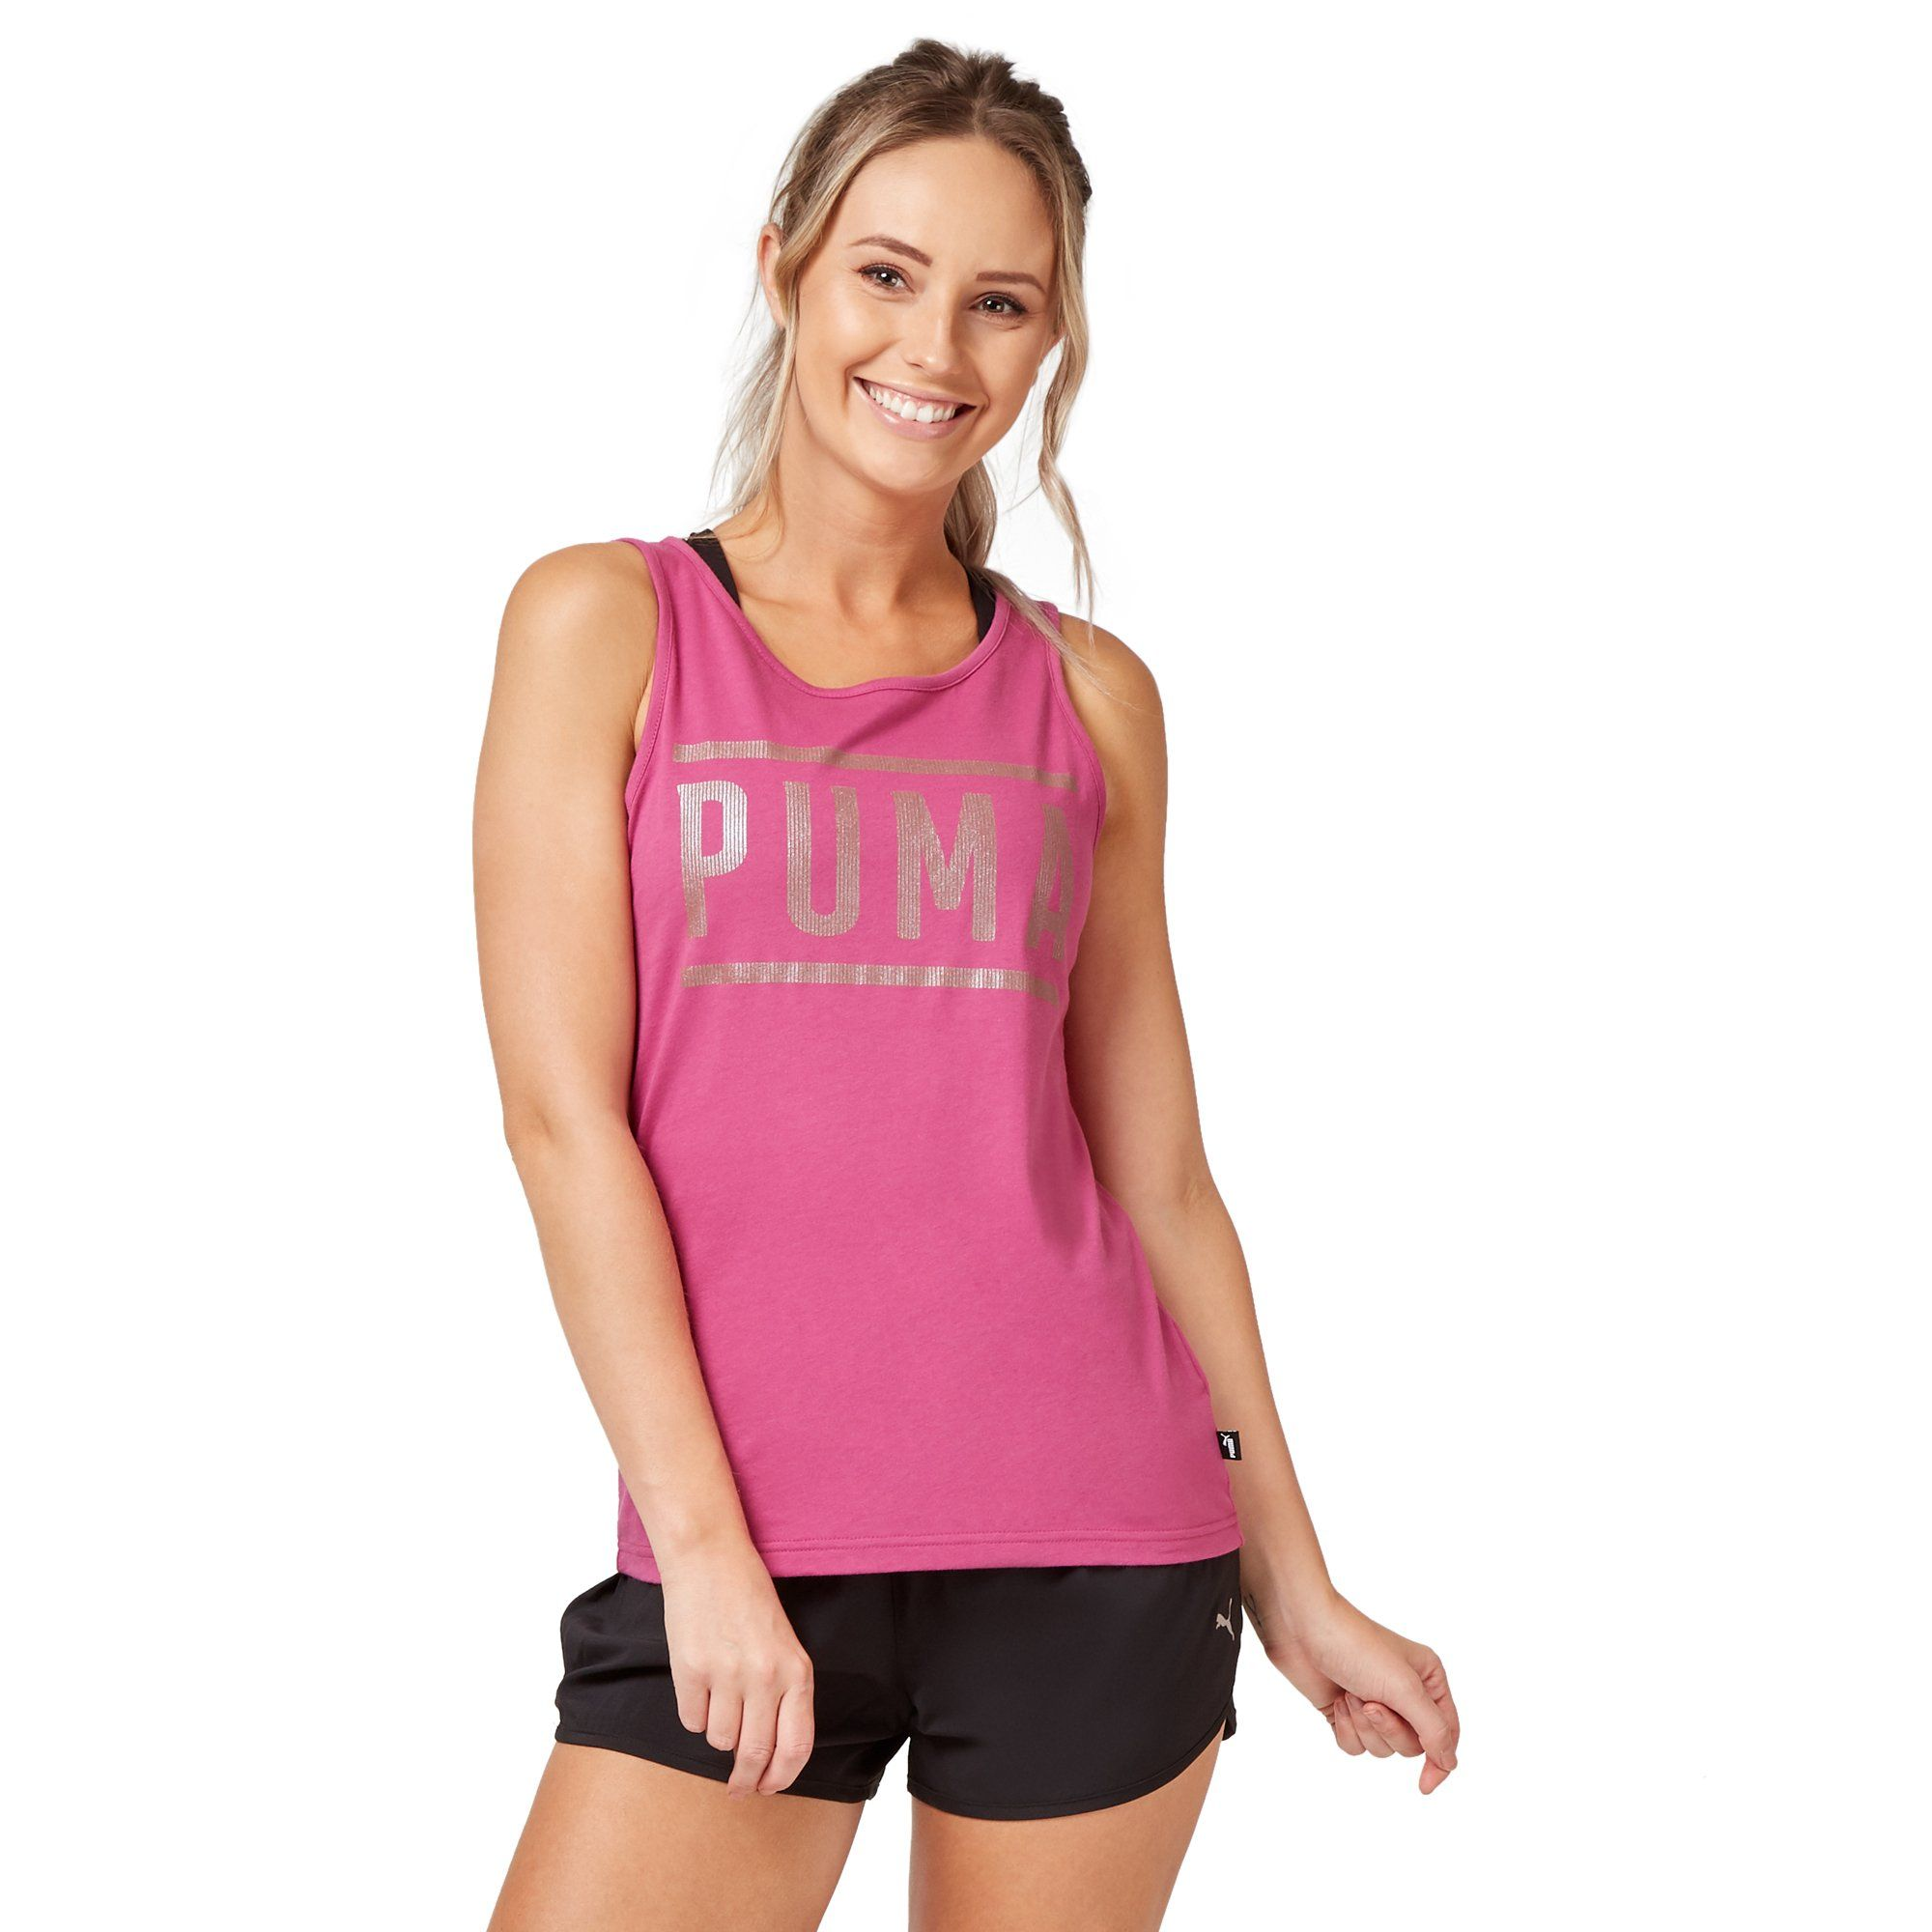 Puma Women's Athletic Tank Top - Magenta Apparel Puma  (2122607493179)